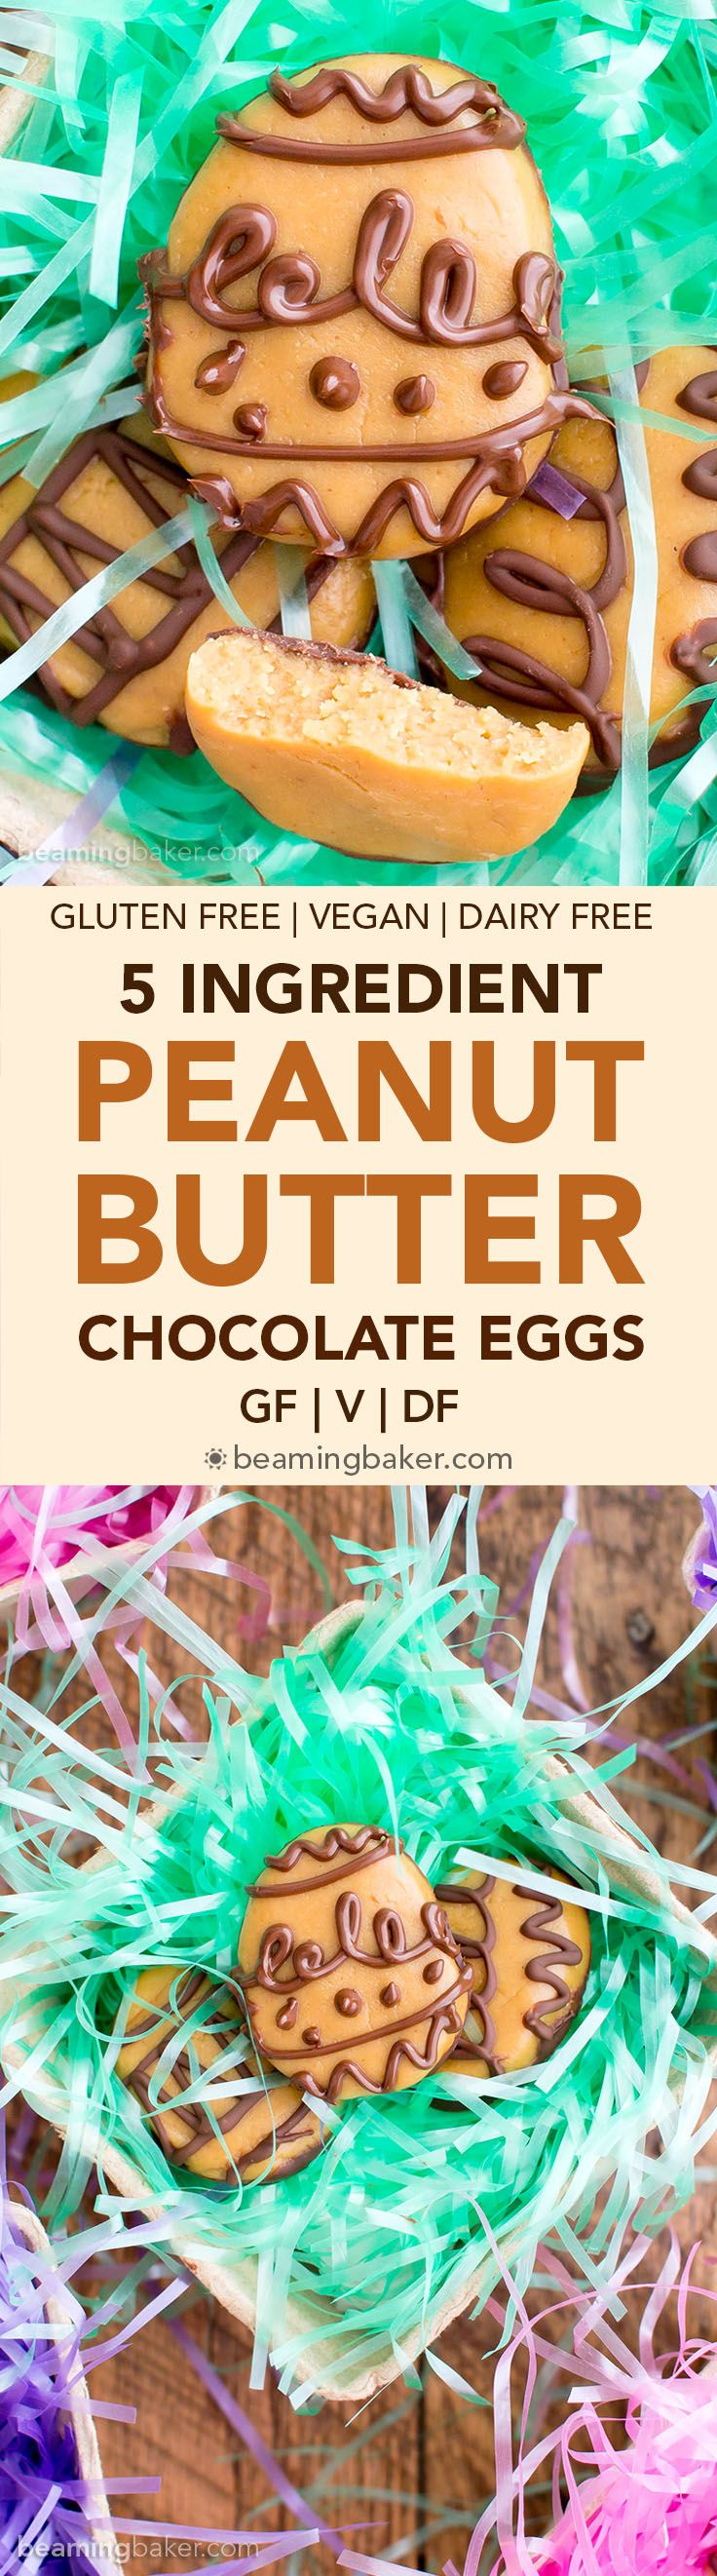 5 Ingredient Chocolate Peanut Butter Eggs (V, GF): a 5-ingredient, no bake recipe for decadent chocolate peanut butter eggs that taste like Reese's. #Vegan #GlutenFree #DairyFree | BeamingBaker.com